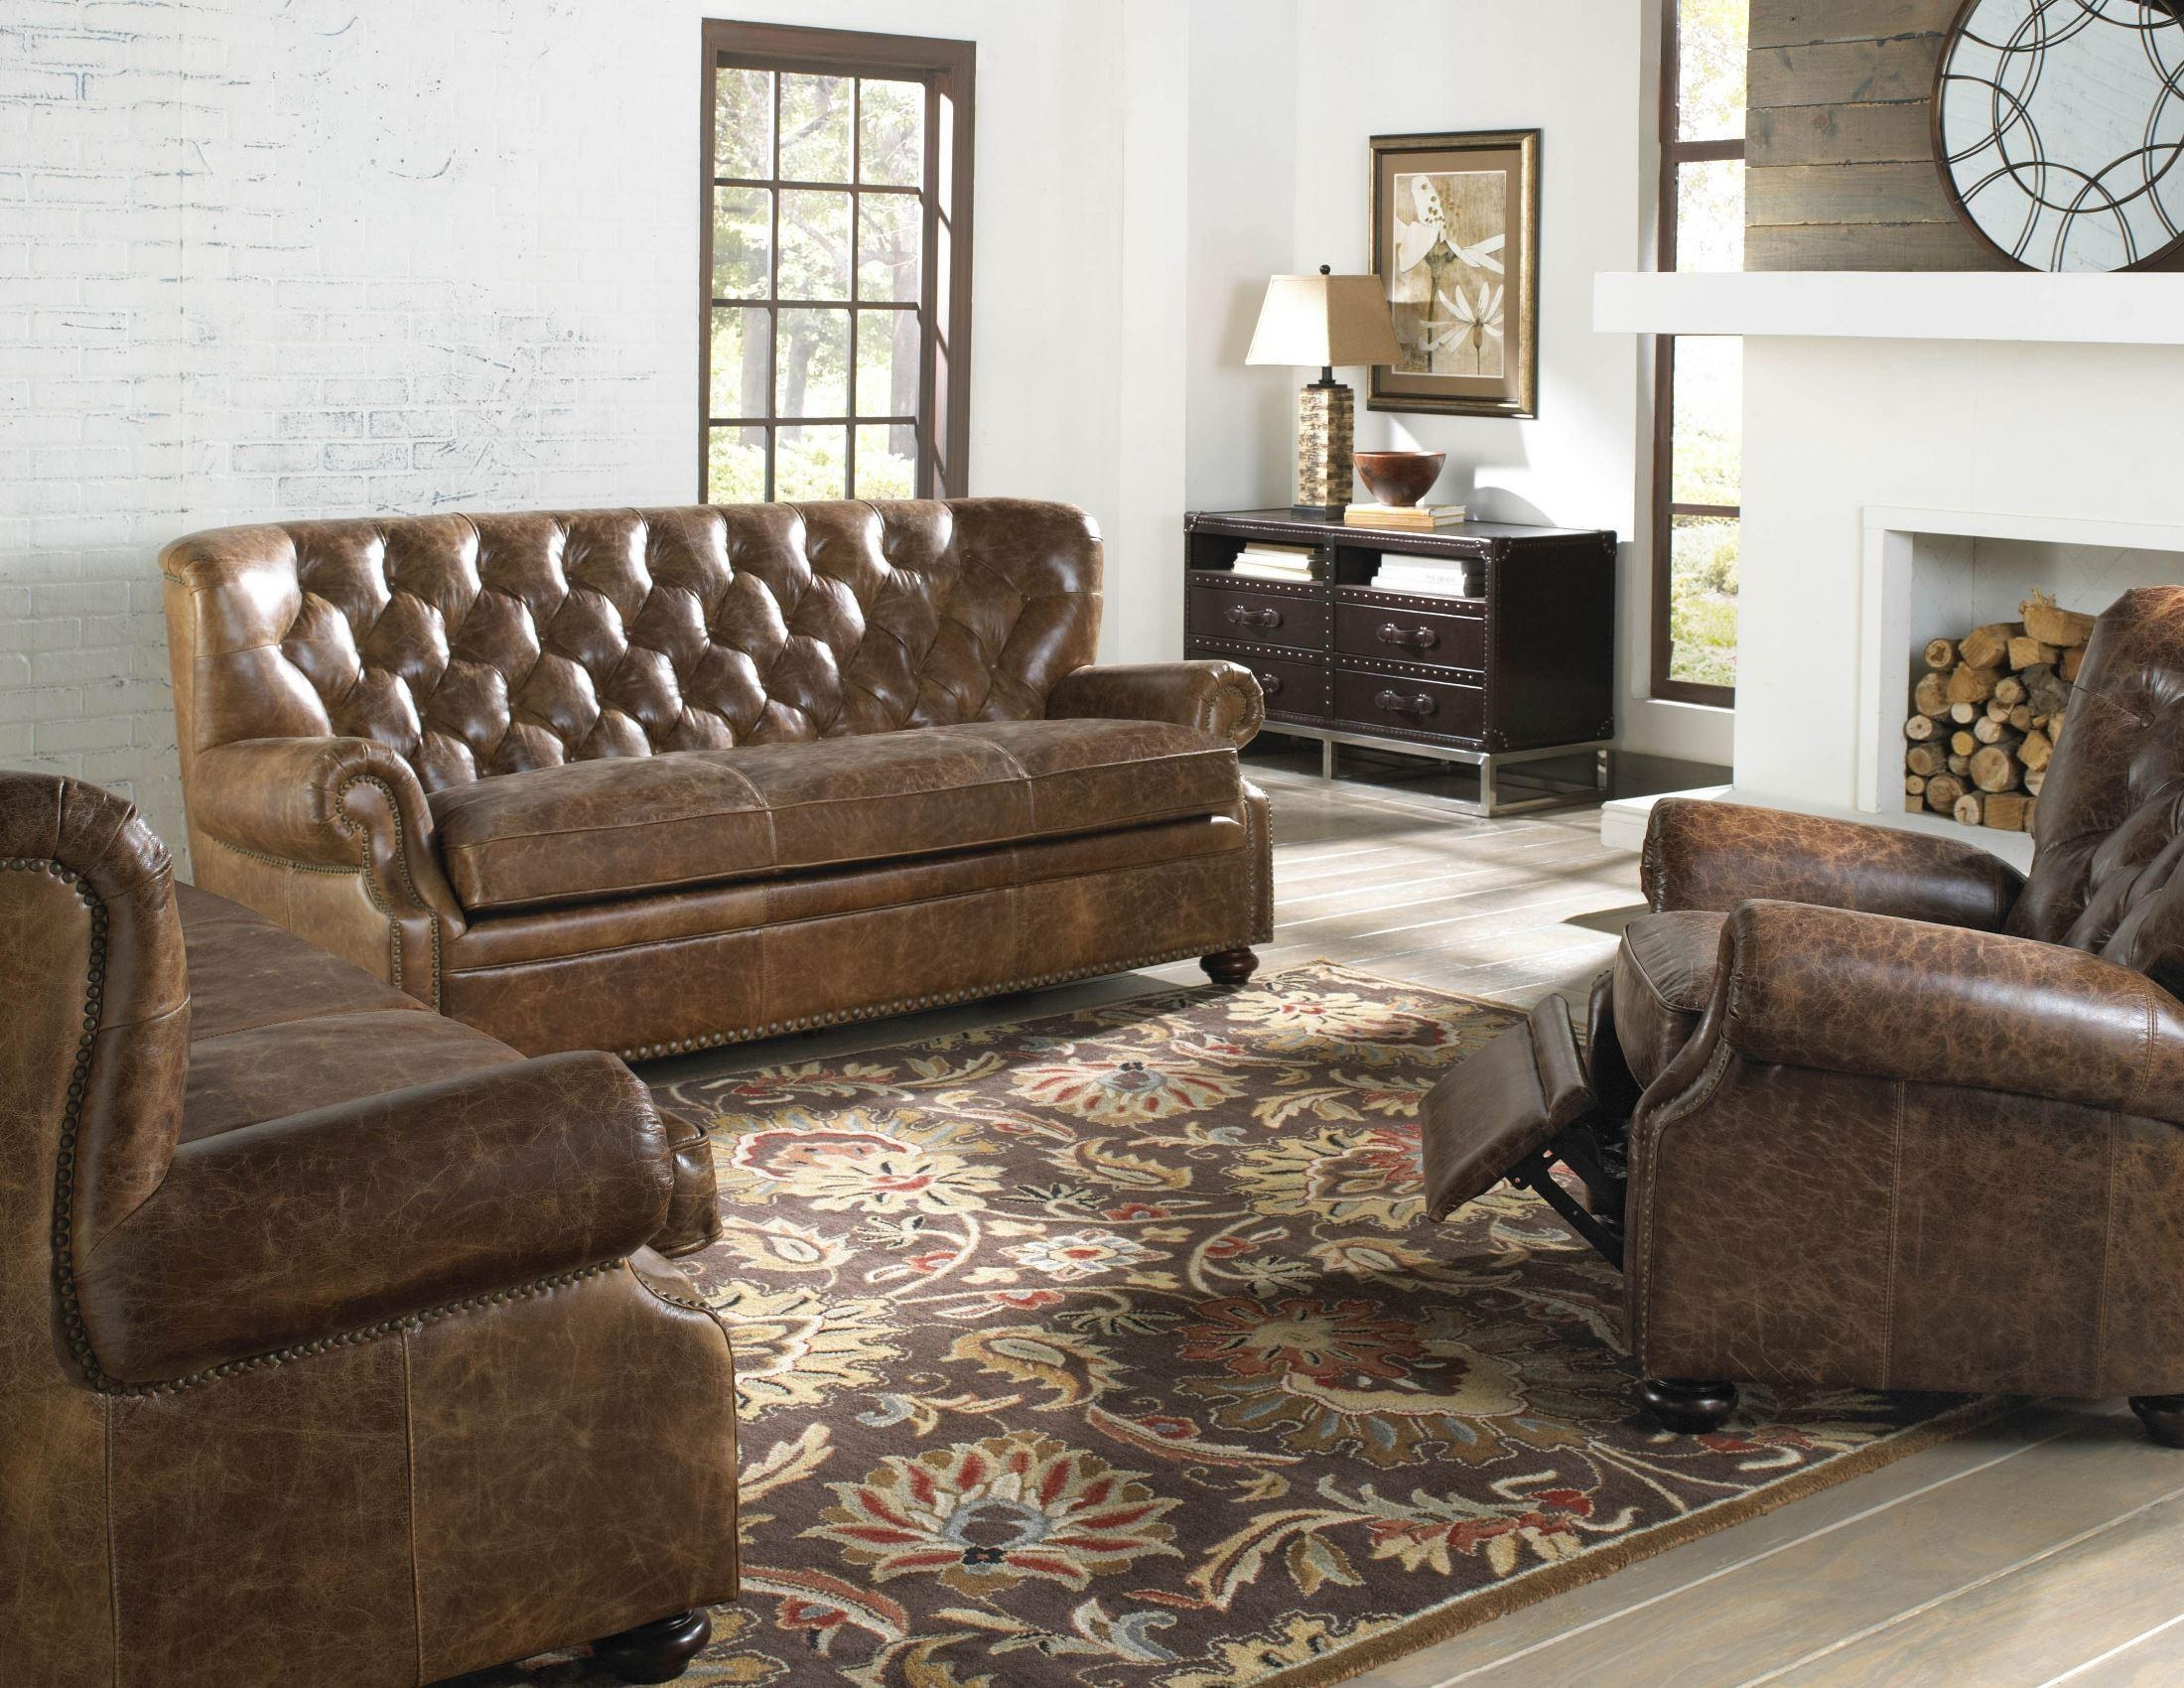 Louis Coco Brompton Leather Sofa From Lazzaro (Wh 1435 30 9021 Pertaining To Brompton Leather Sofas (Image 10 of 20)